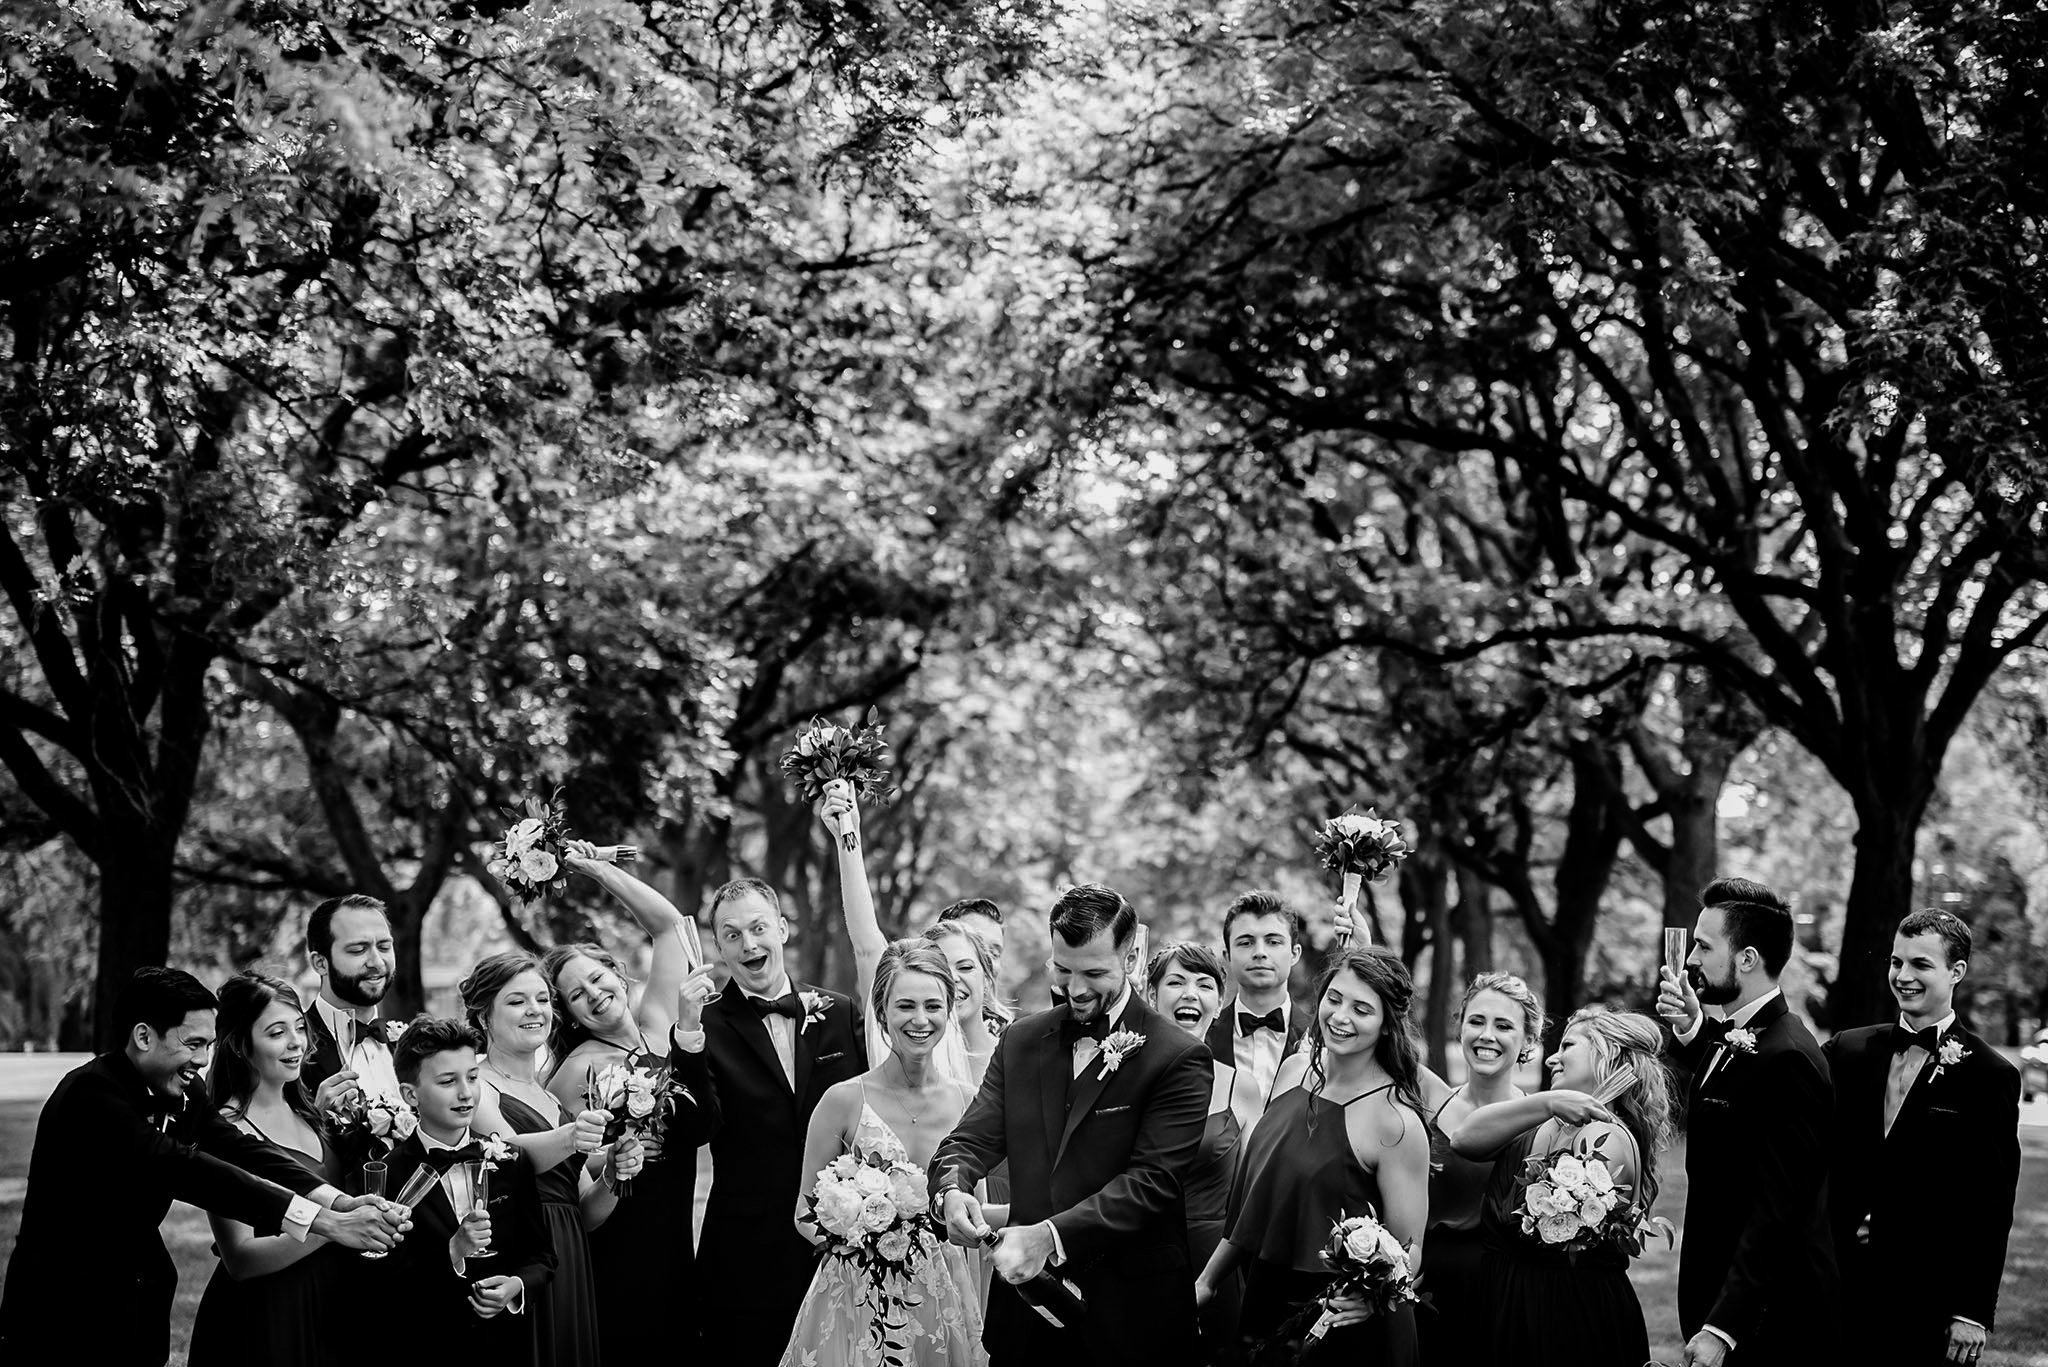 bride and groom with wedding party at cantigny park